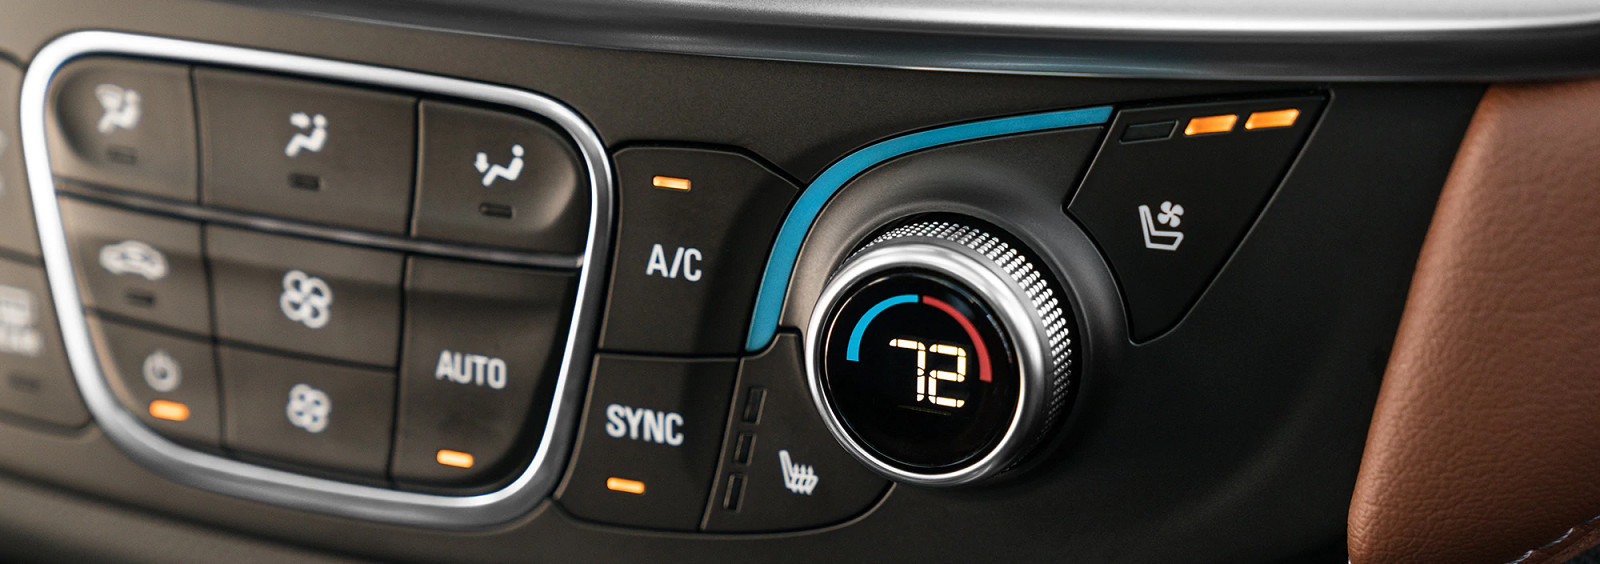 Climate Controls in the 2020 Traverse